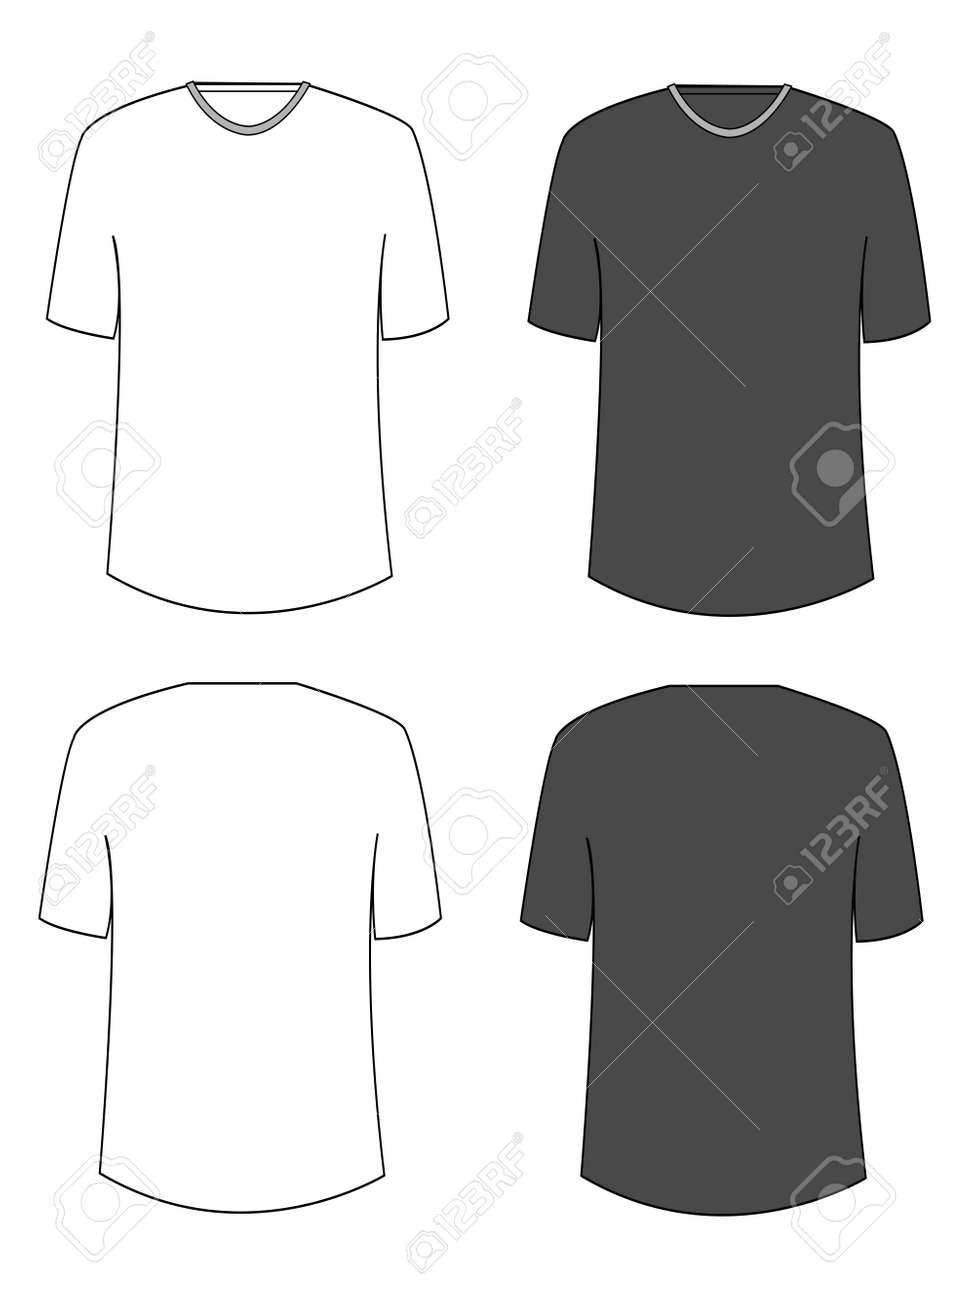 Apparel Shirts Template T-shirt Templates Royalty Free Cliparts ...